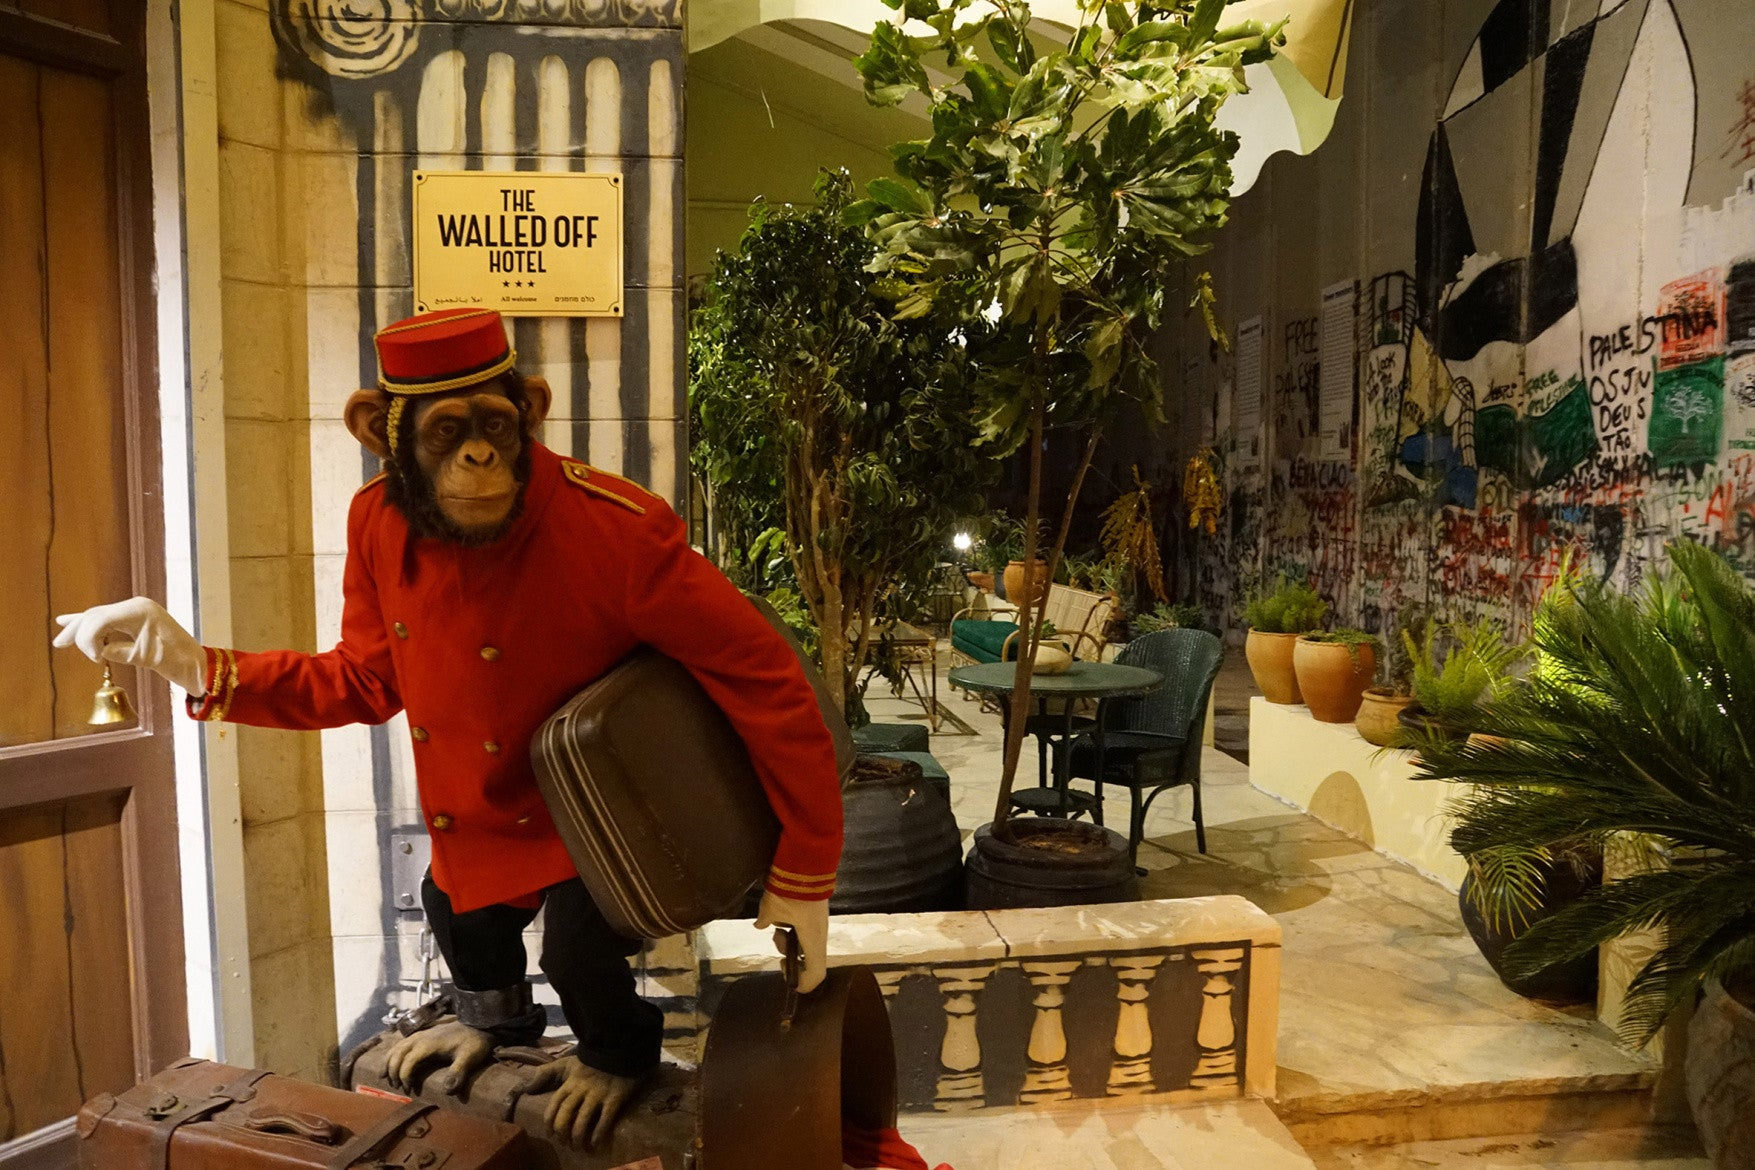 Take a Closer Look Inside the Banksy Hotel